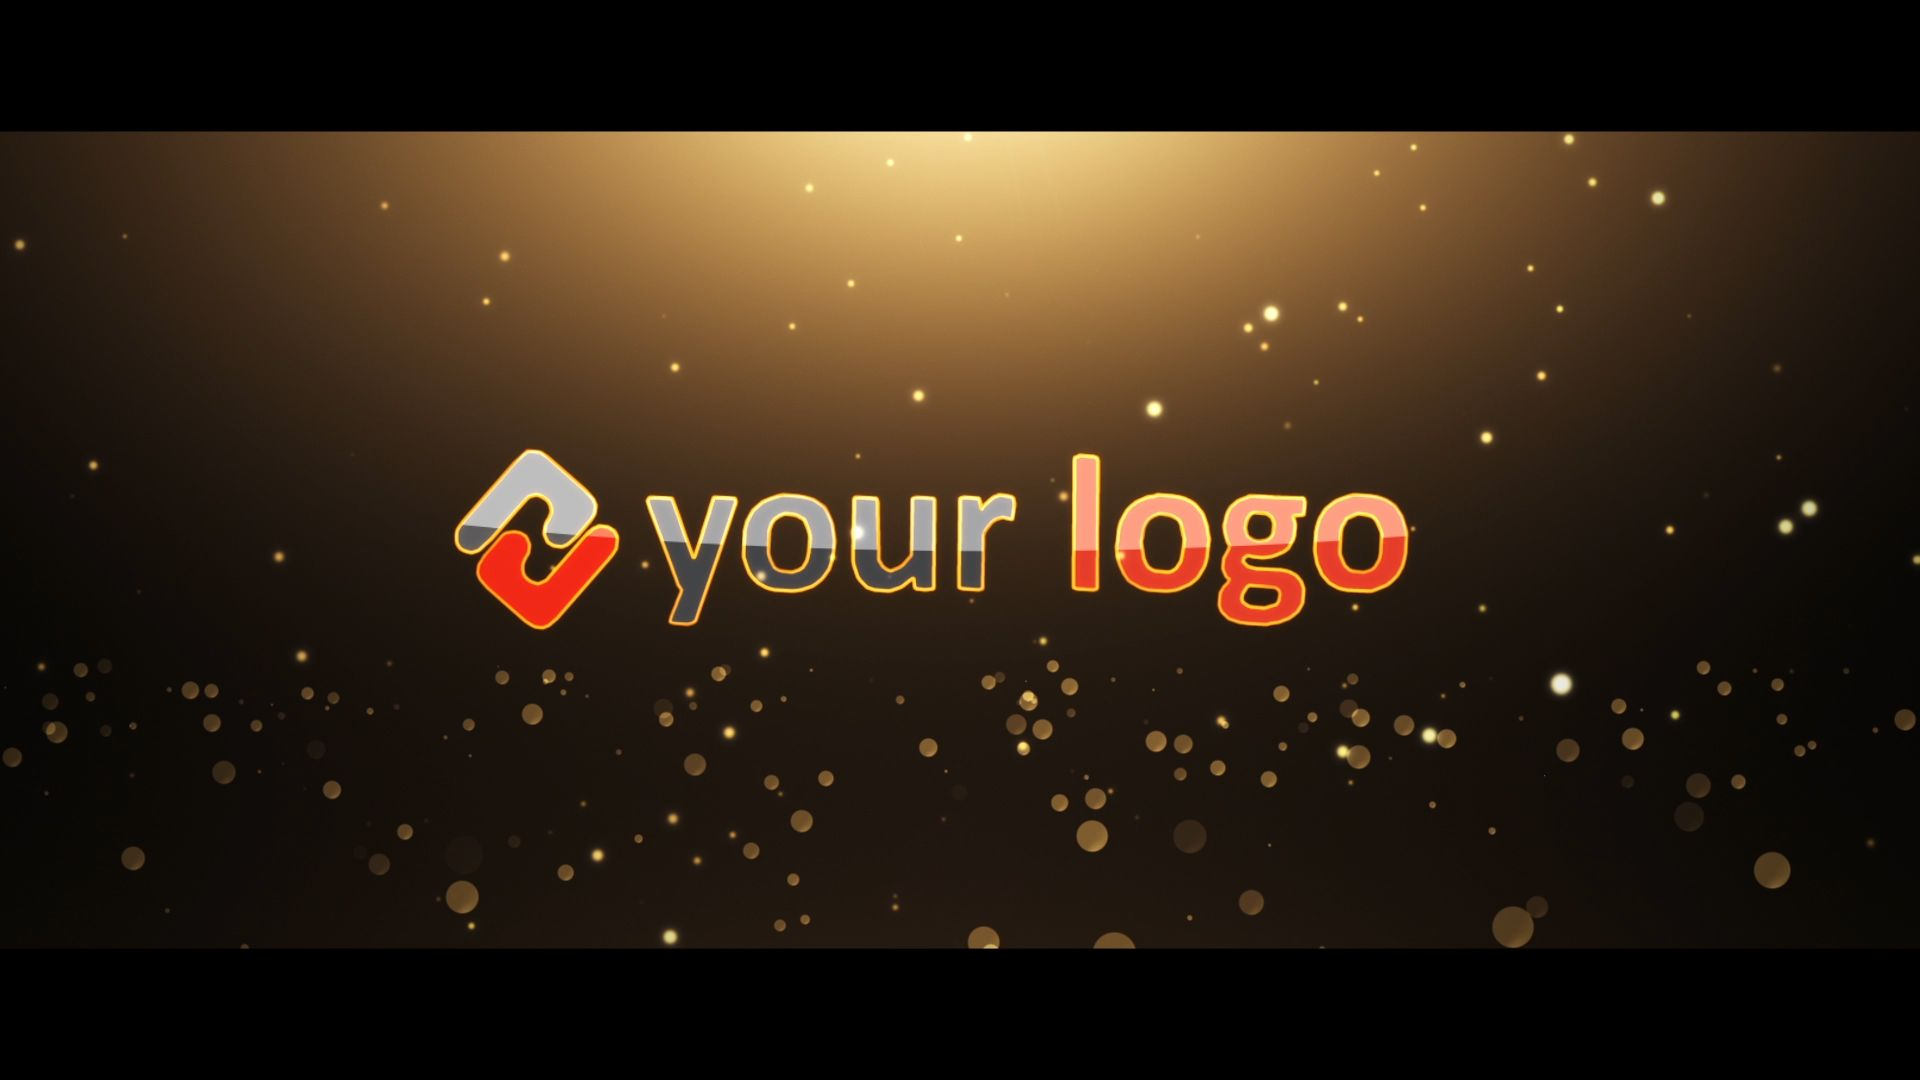 Customize Luxury - Logo with your own logo or image to view your free intro movie.